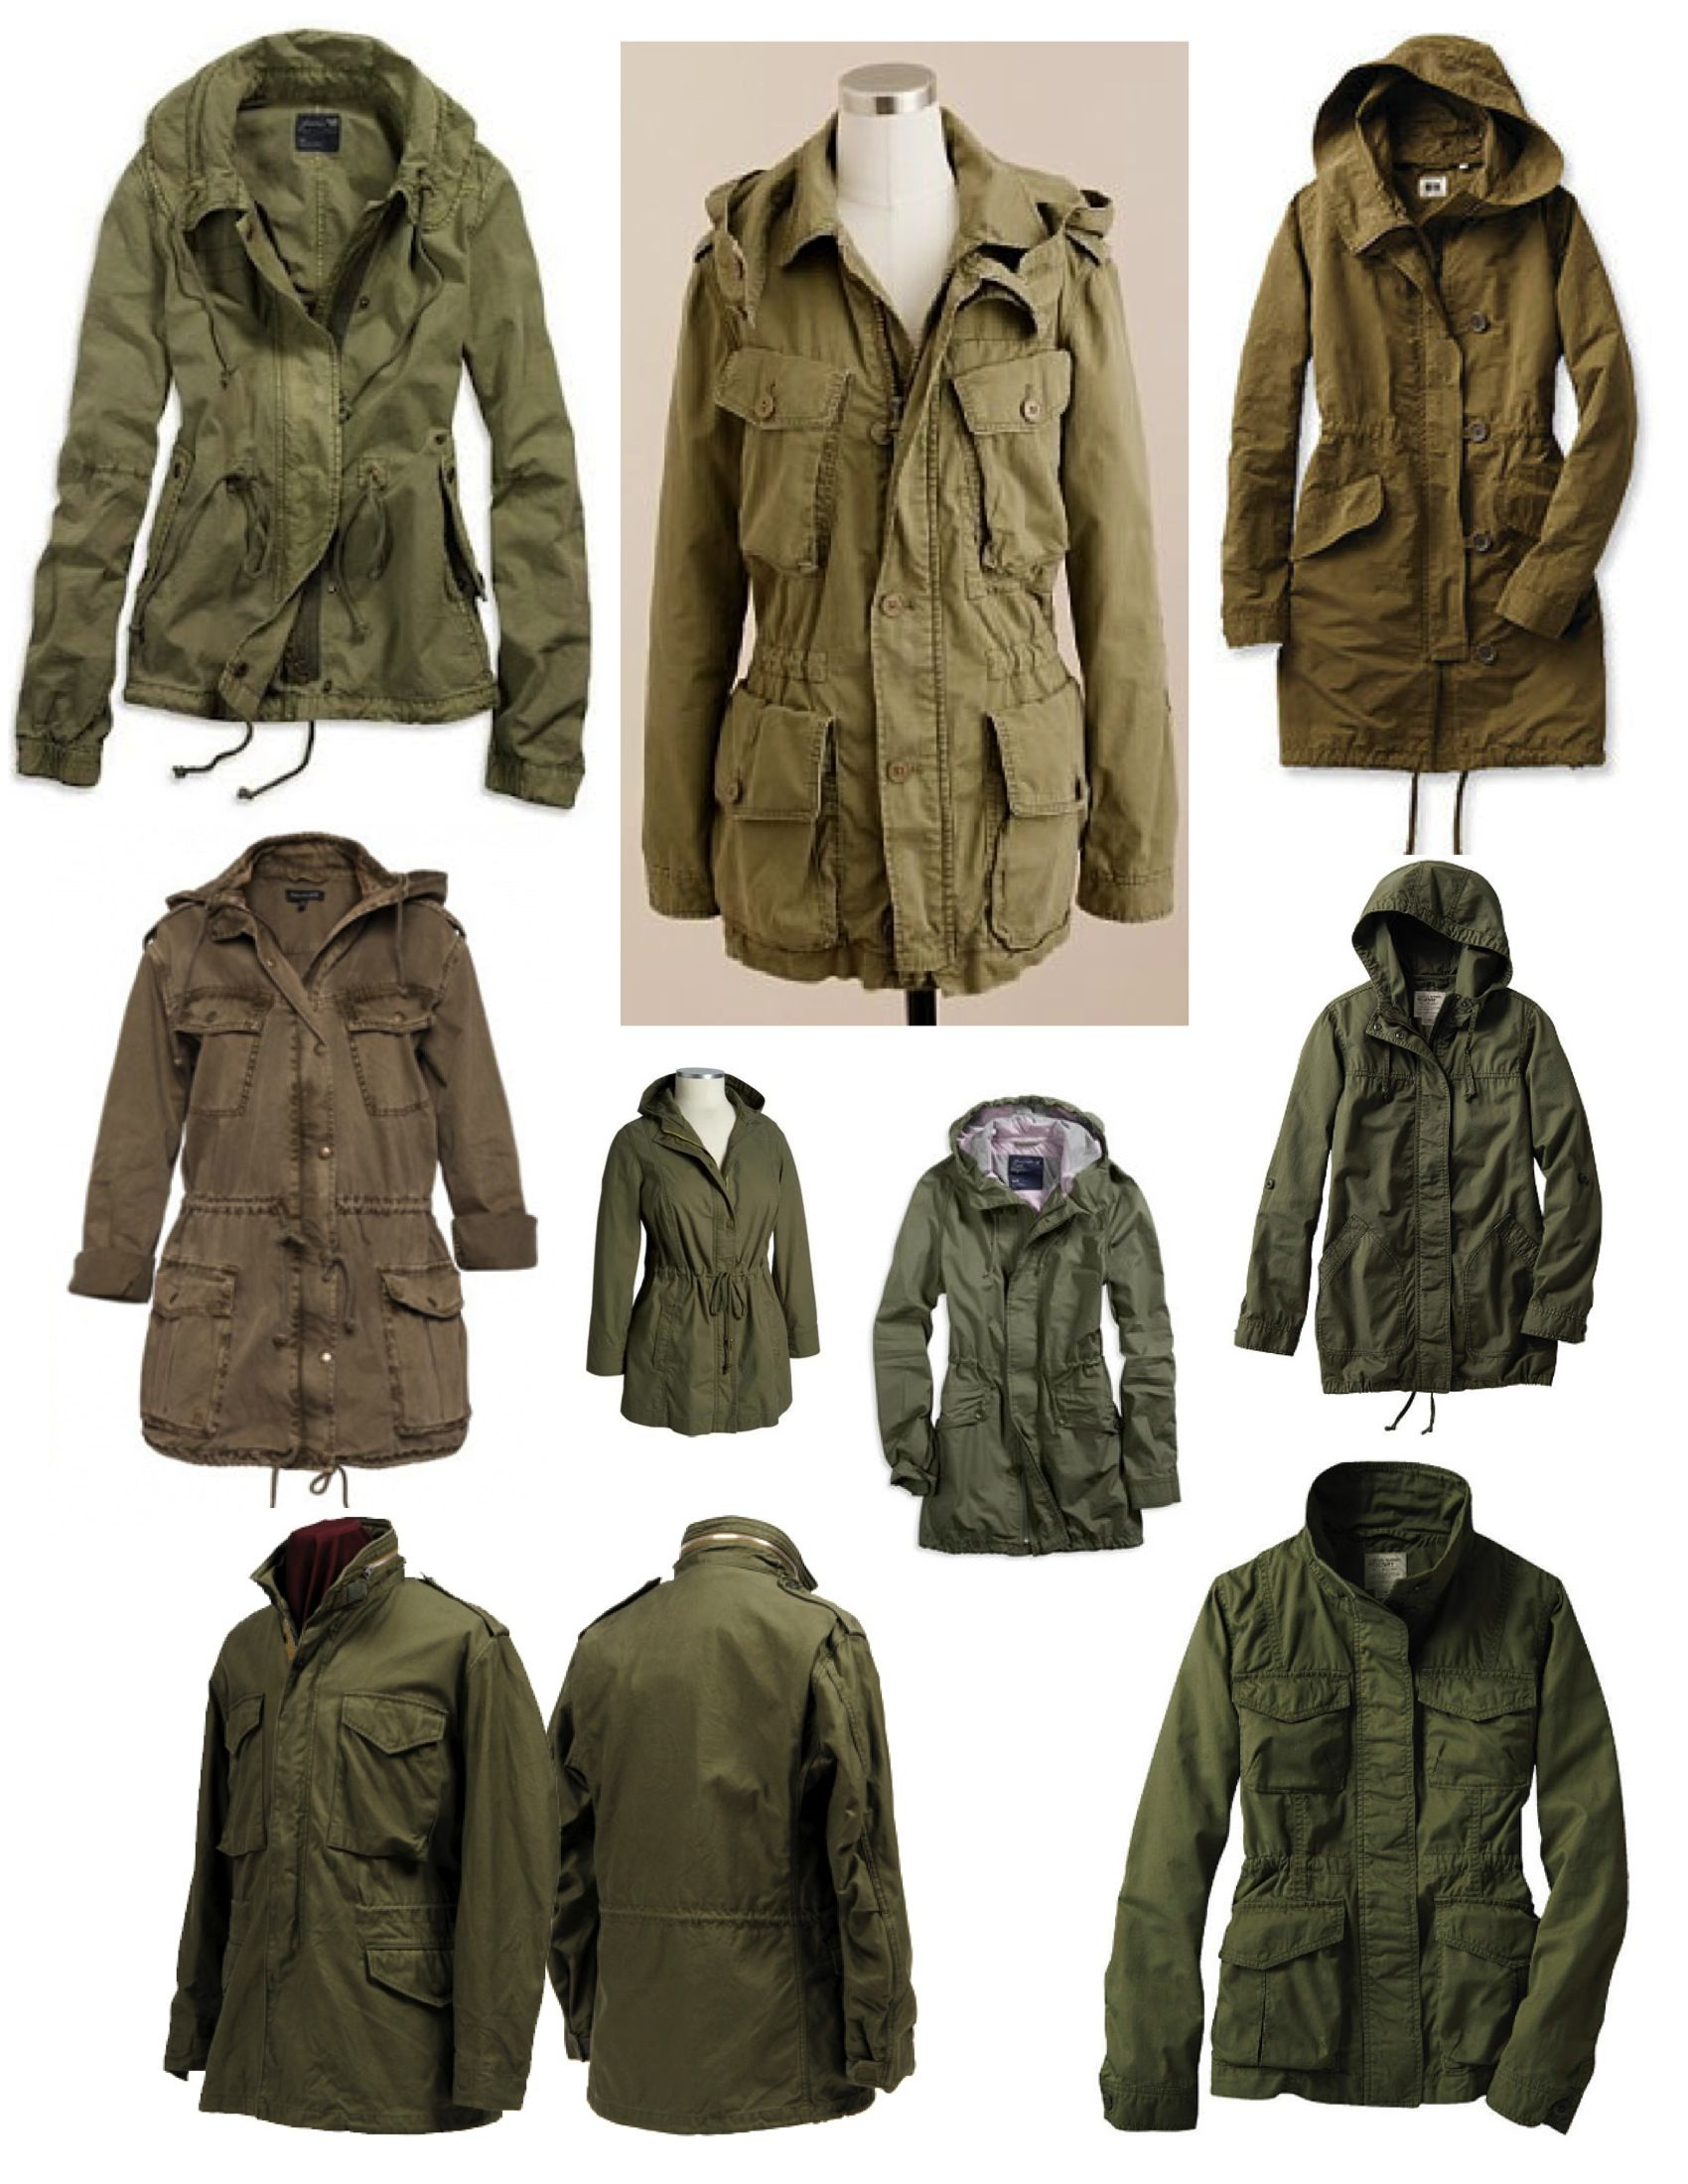 Anorak Parka Hooded Jacket | Outdoor Jacket